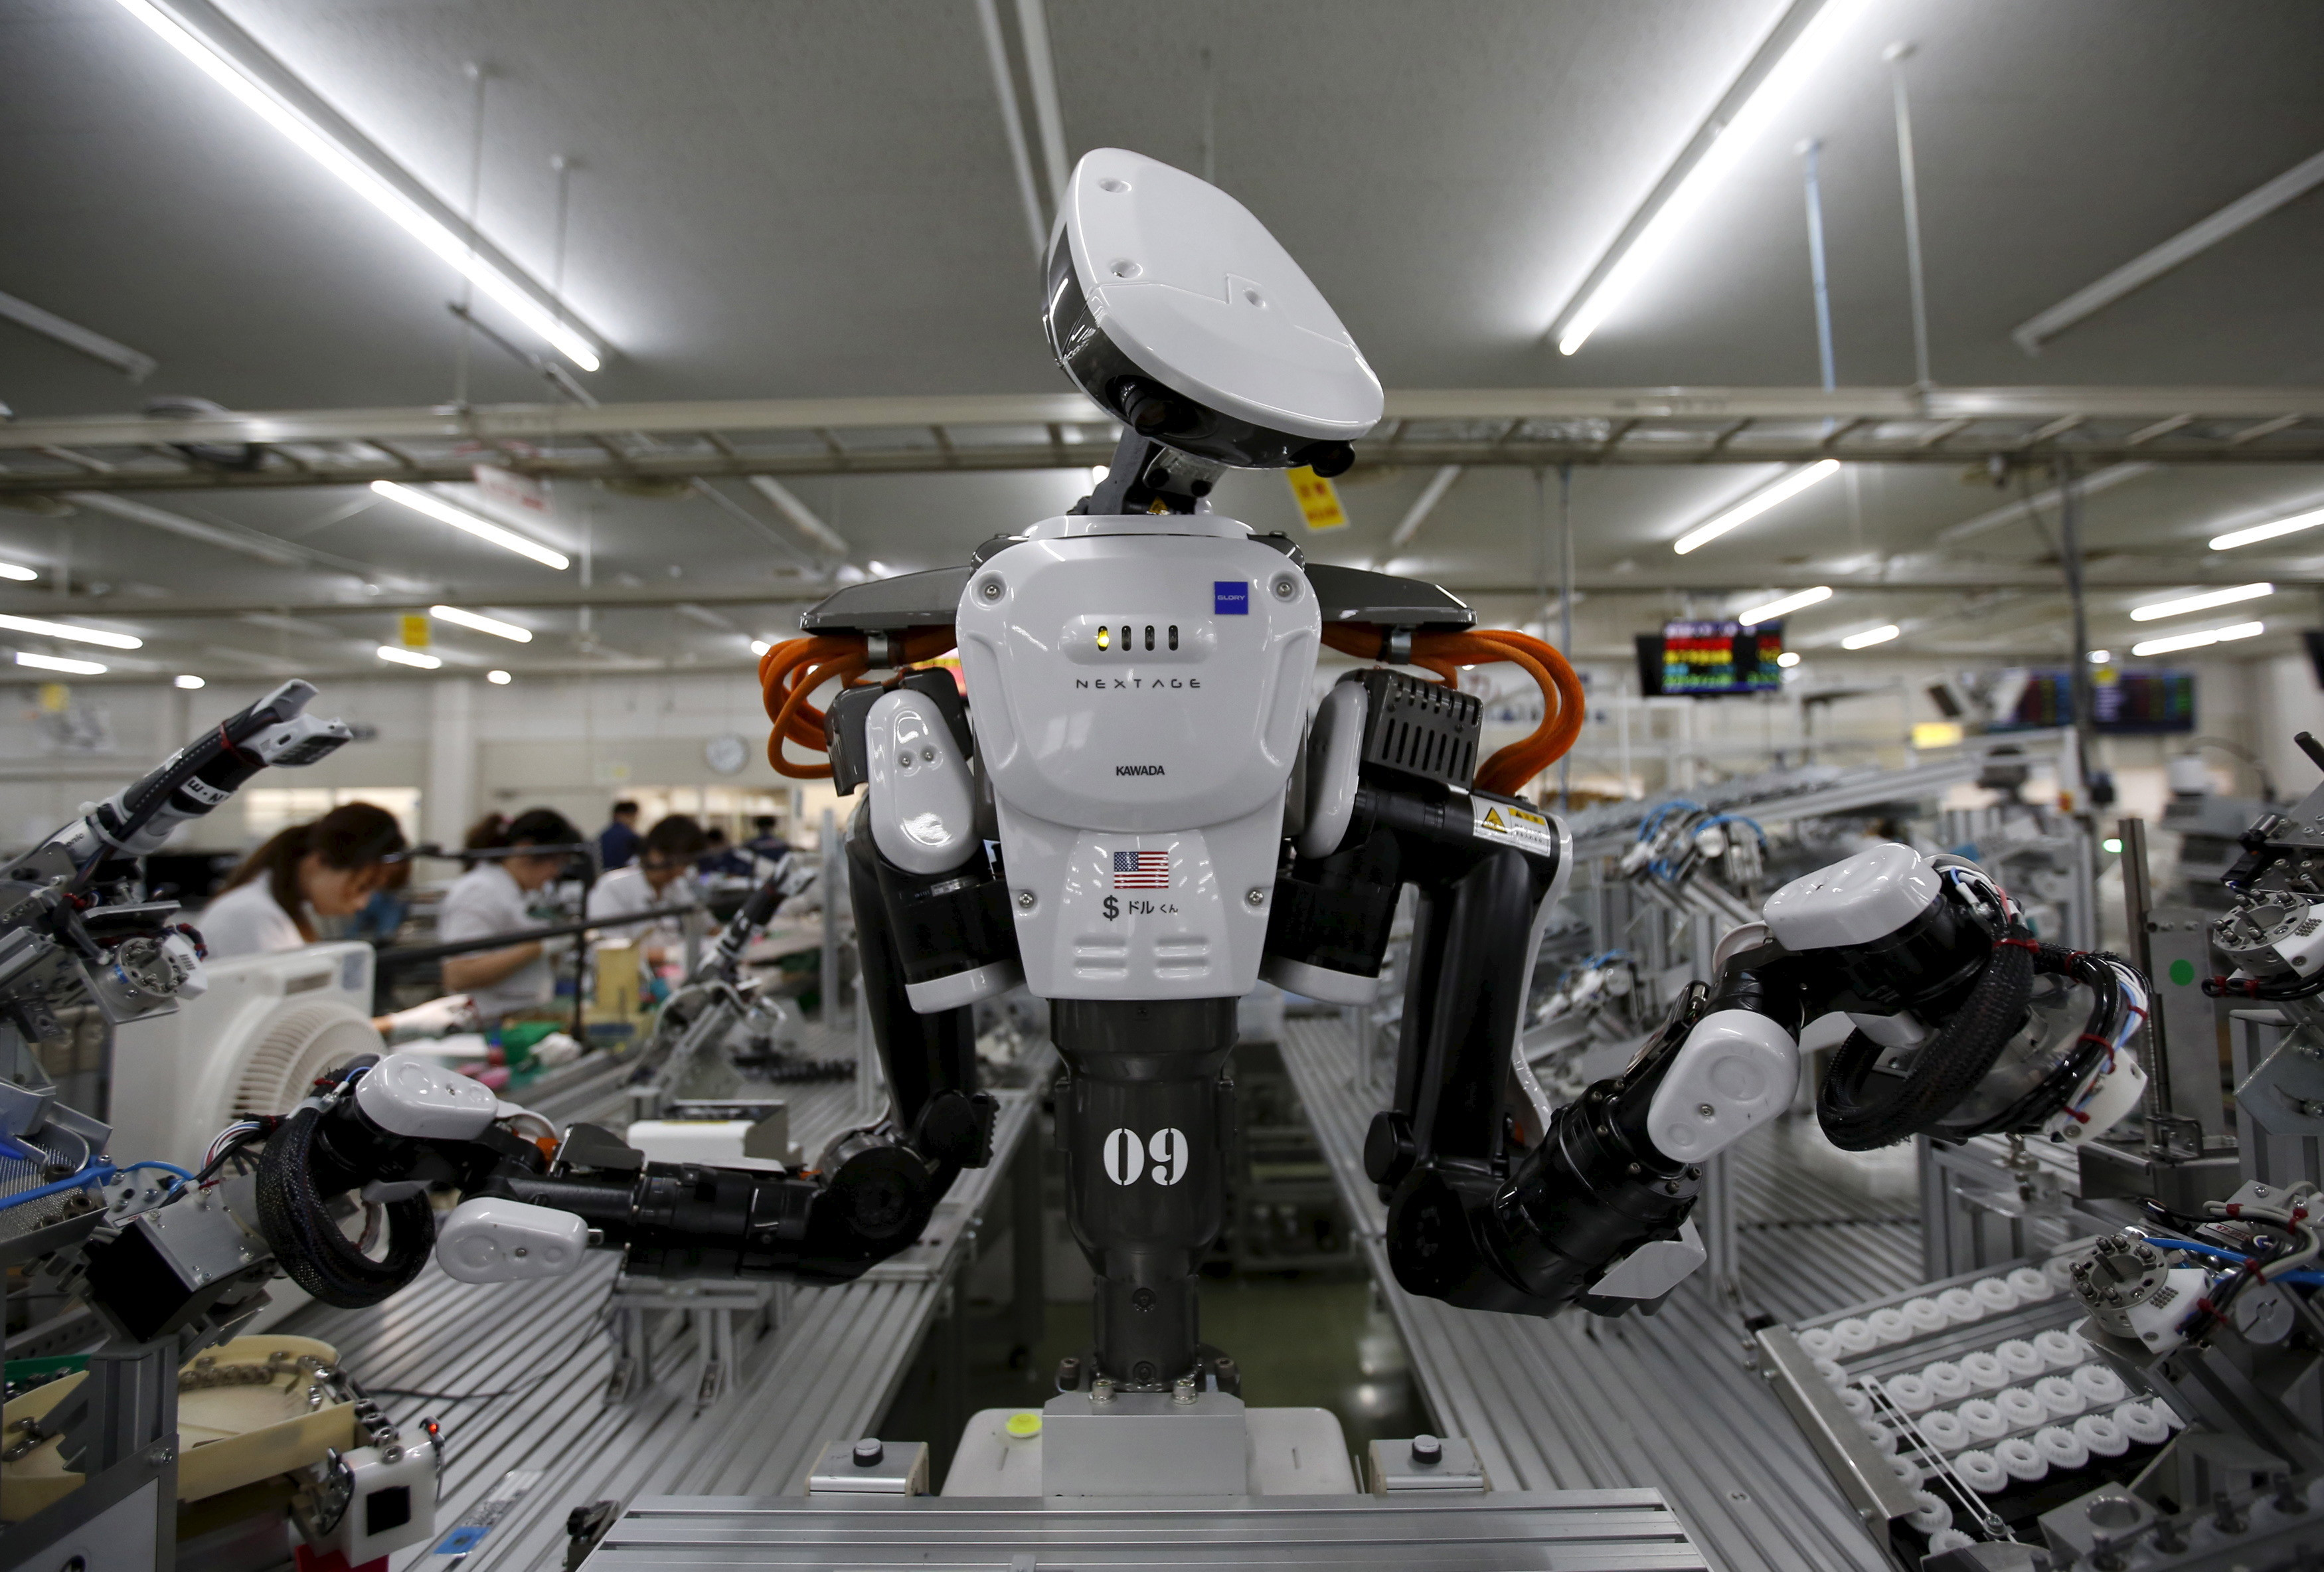 A humanoid robot works side by side with employees in the assembly line at a factory of Glory Ltd., a manufacturer of automatic change dispensers, in Kazo, north of Tokyo, Japan, July 1, 2015. Japanese firms are ramping up spending on robotics and automation, responding at last to premier Shinzo Abe's efforts to stimulate the economy and end two decades of stagnation and deflation. Picture taken July 1, 2015. REUTERS/Issei Kato      TPX IMAGES OF THE DAY      - GF10000147191